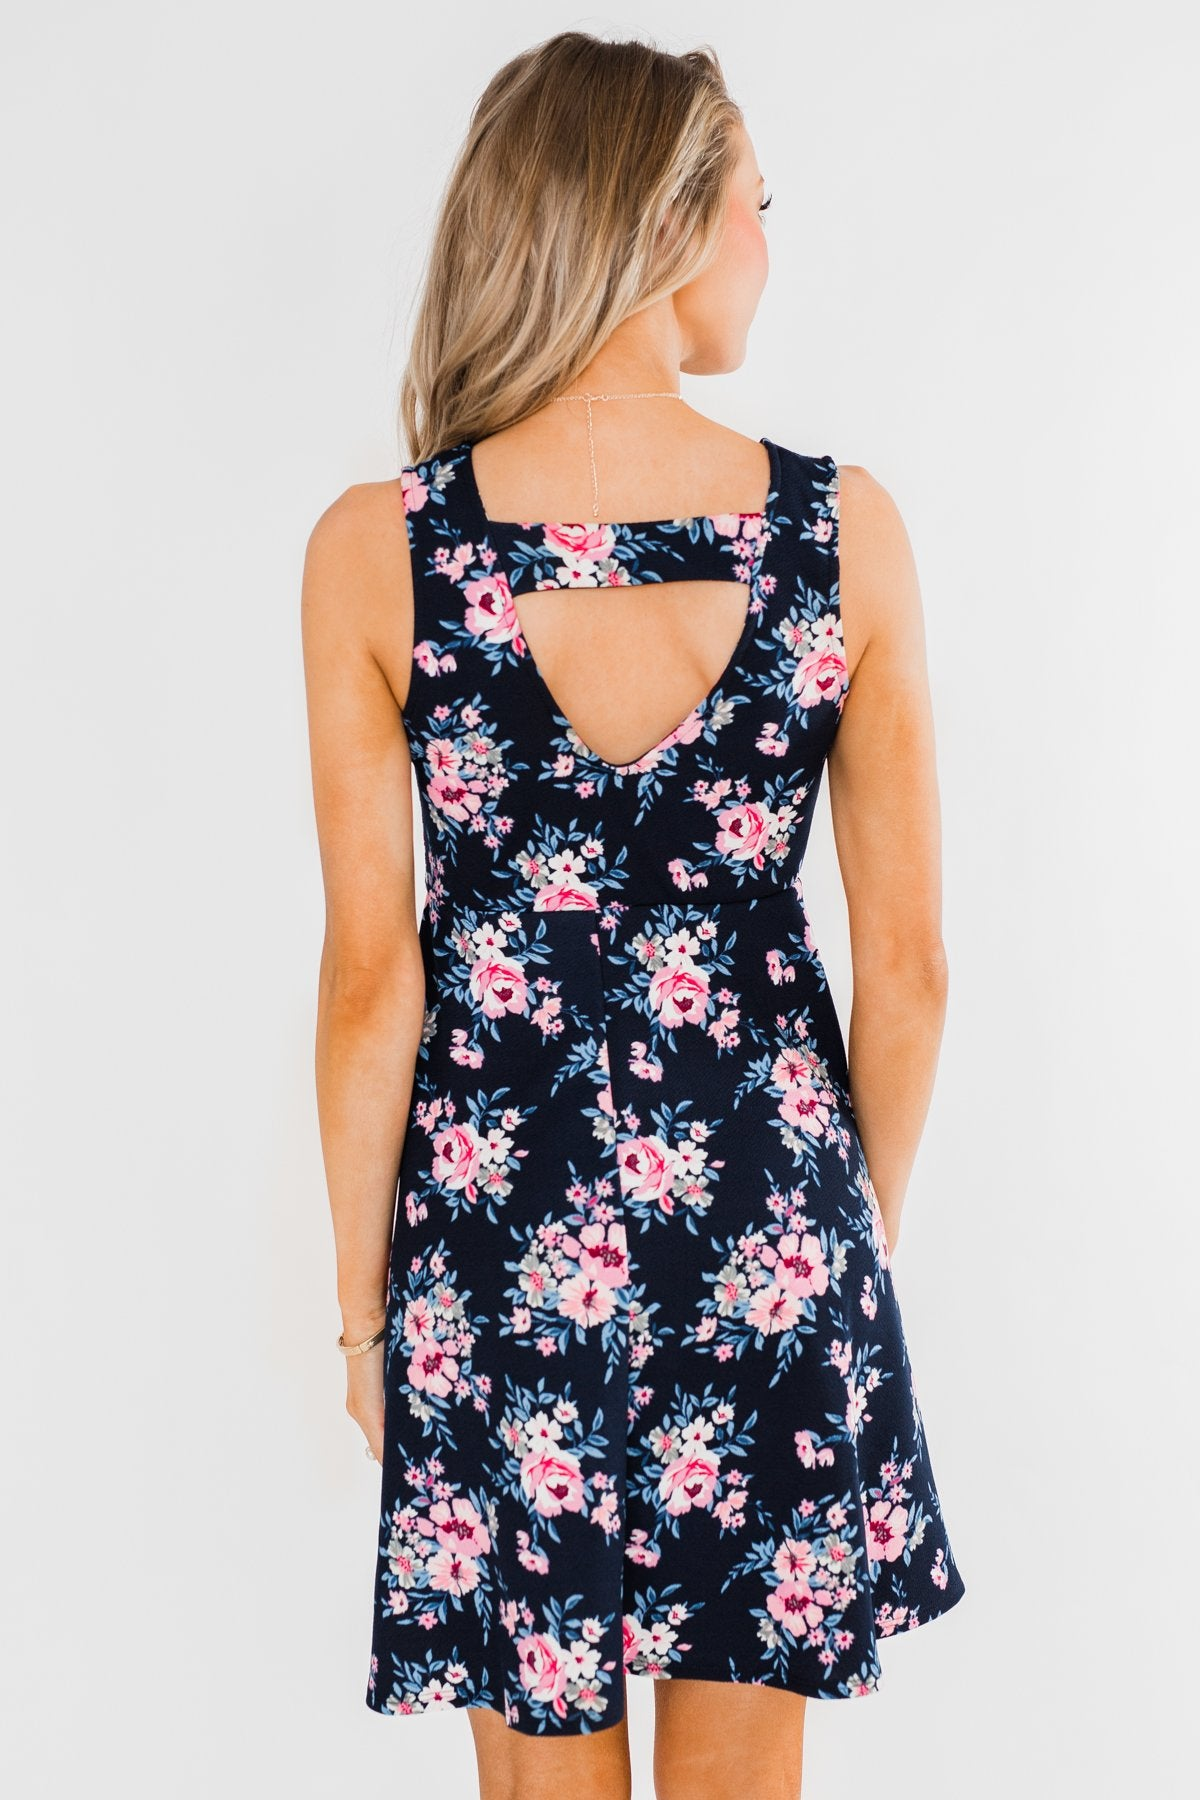 Enchanted Evening Floral Dress- Navy